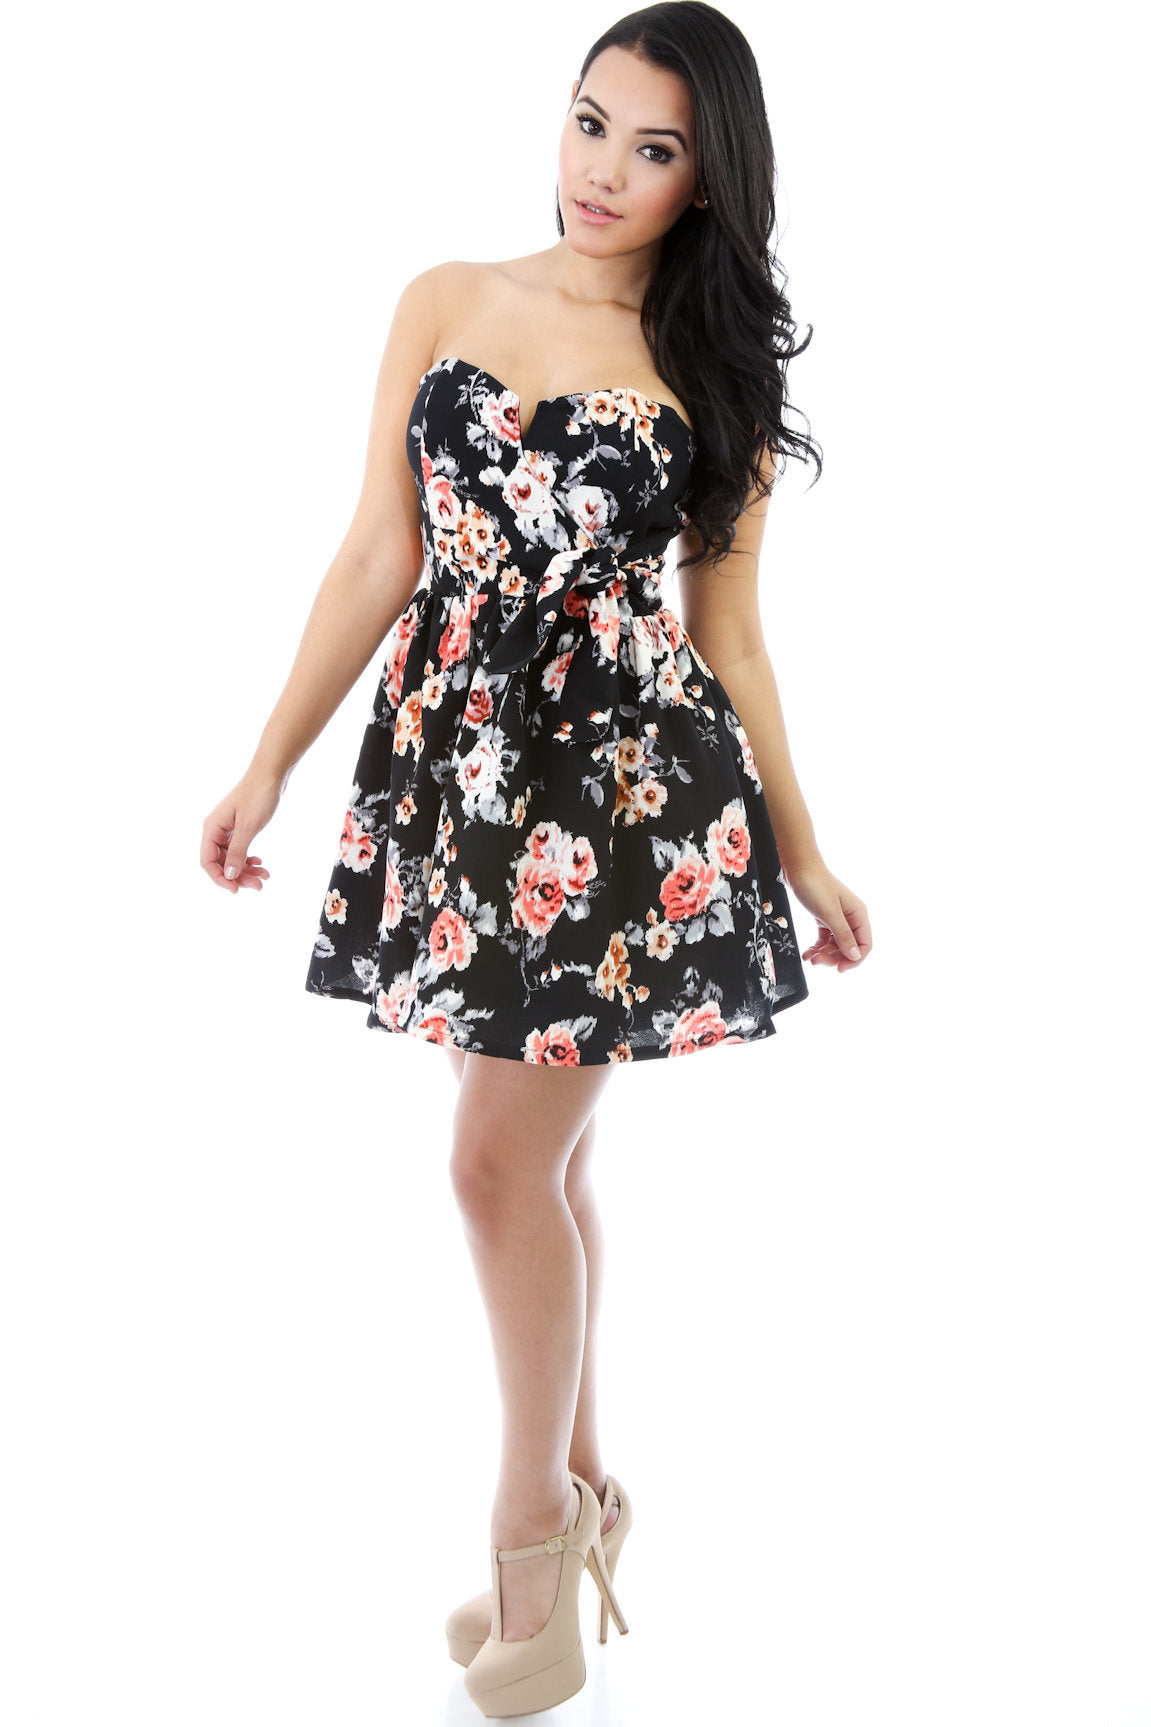 Floralella dress